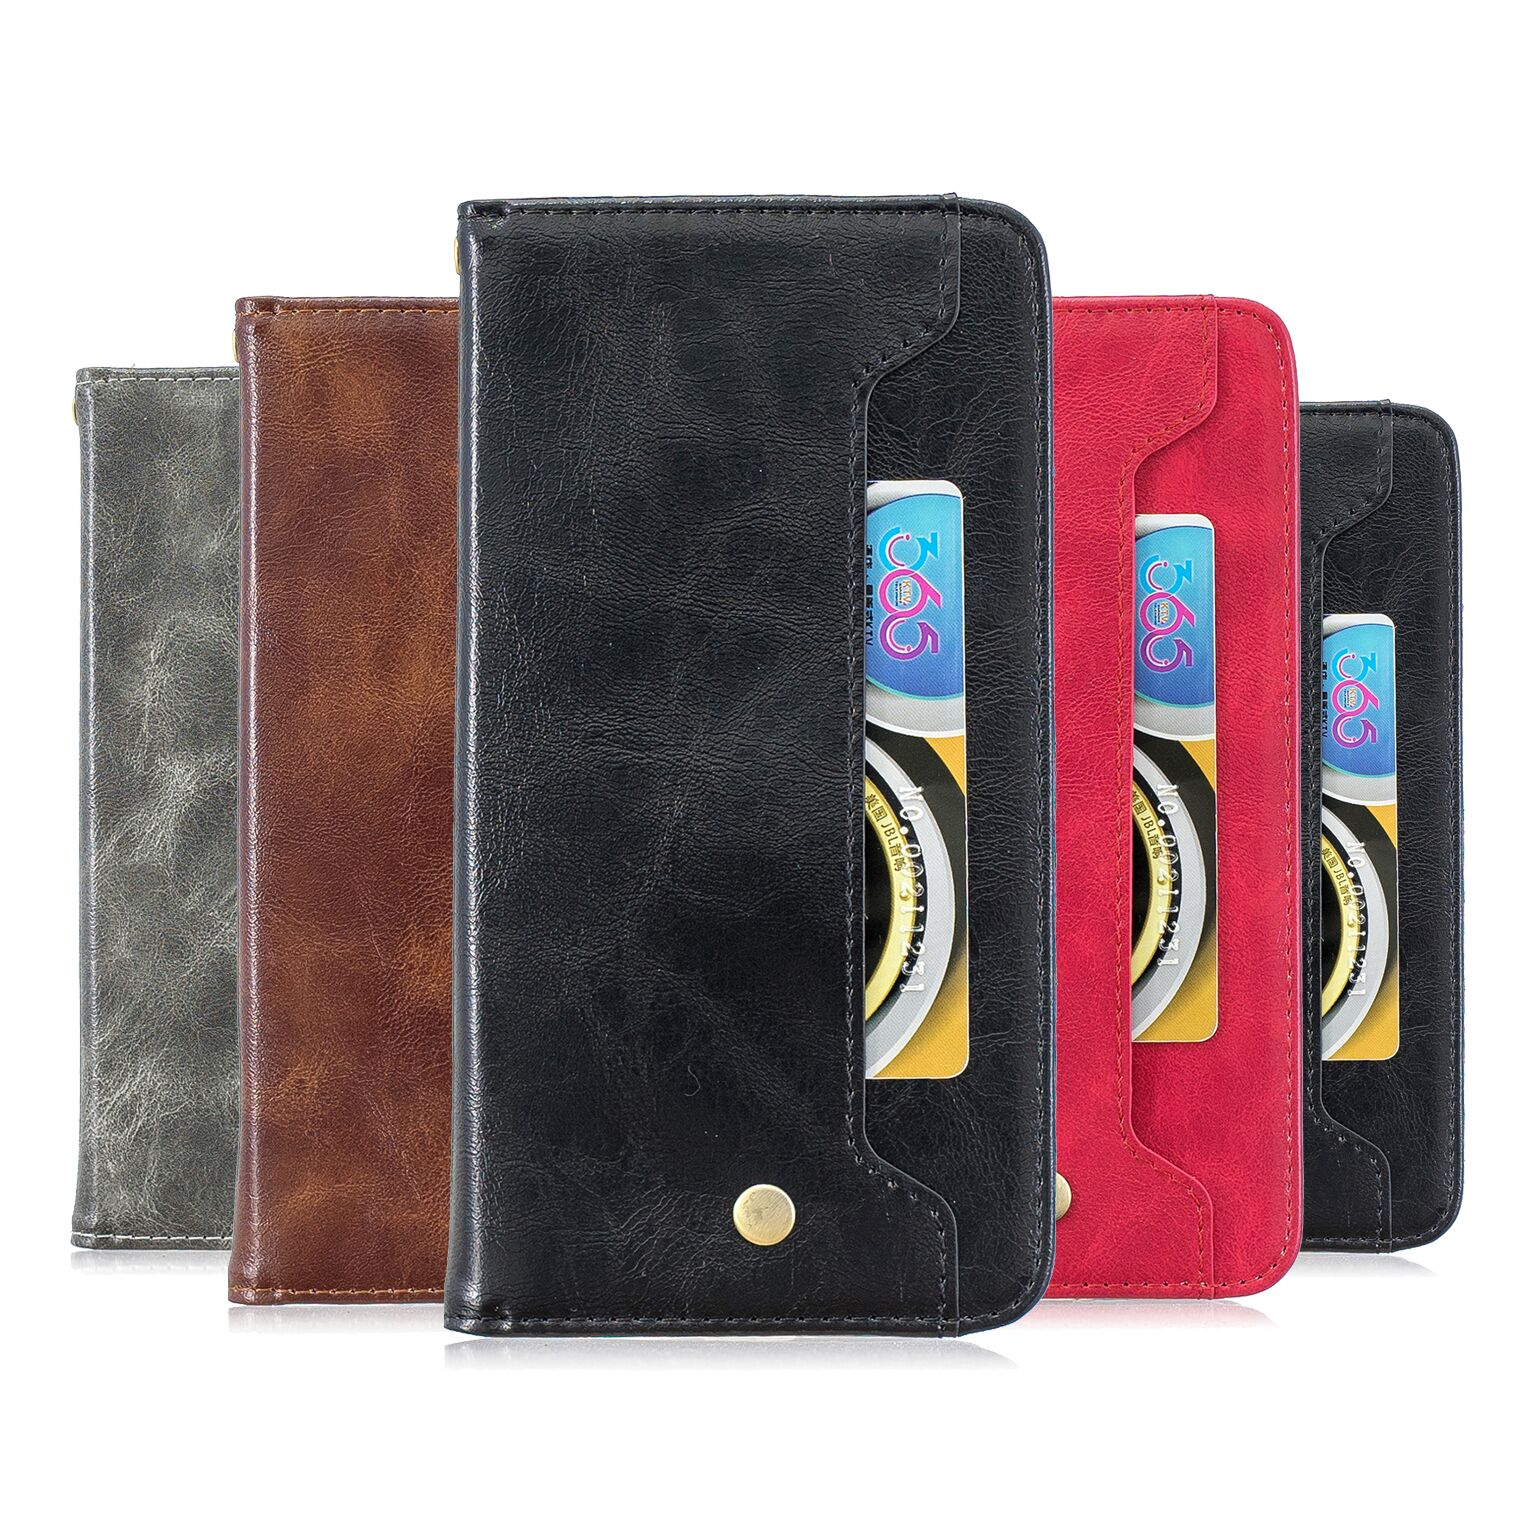 Leather Book Flip Phone Wallet Case Cover For Nokia 5 Nokia5 Luxury Phone Case Coque For Nokia 5 Nokia5 <font><b>TA</b></font> <font><b>1053</b></font> <font><b>TA</b></font>-<font><b>1053</b></font> Fundas image